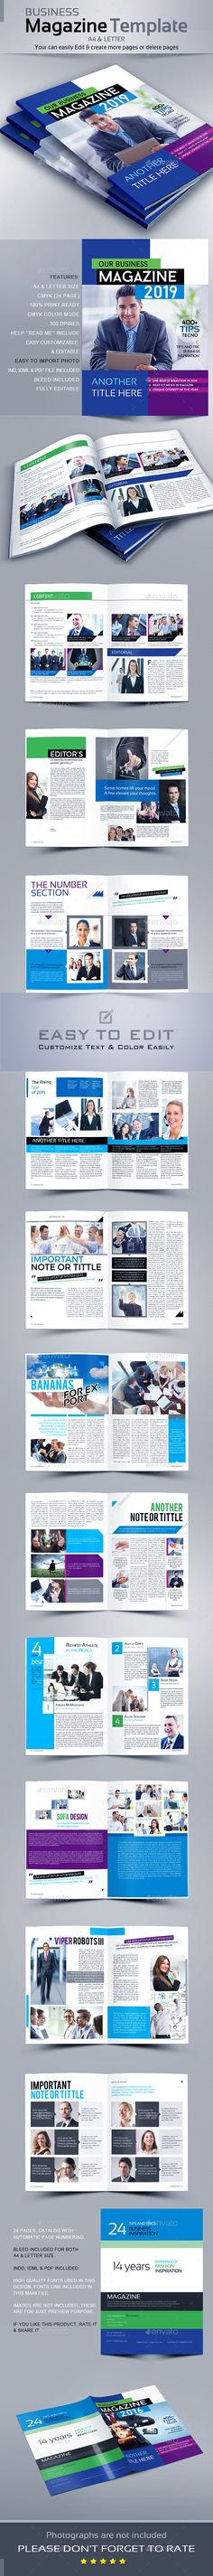 Magazine Template InDesign INDD - 24 Unique Pages, A4 Size & US Letter Size